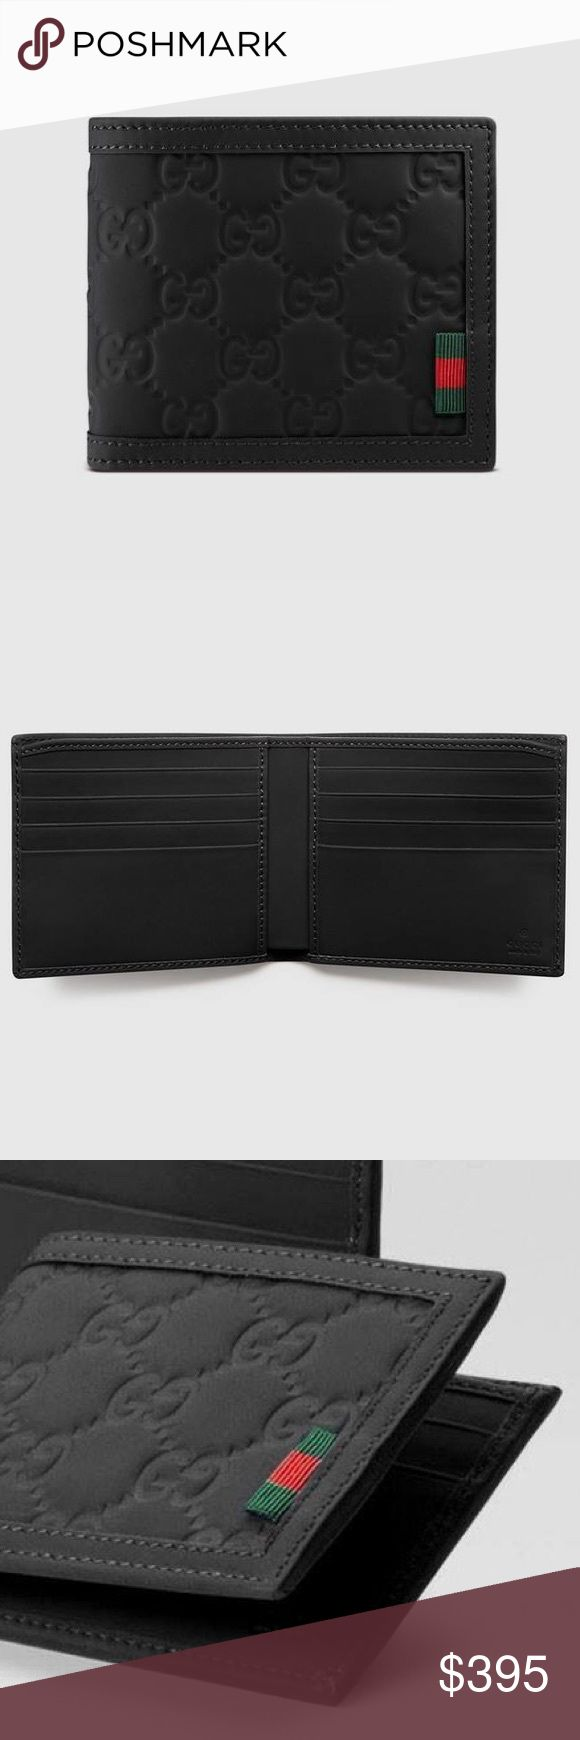 Gucci Men's Wallet - Father's Day Gift Idea 👨🏻 Authentic. Brand new. Final sale. Please ask questions before purchasing. Gucci Bags Wallets